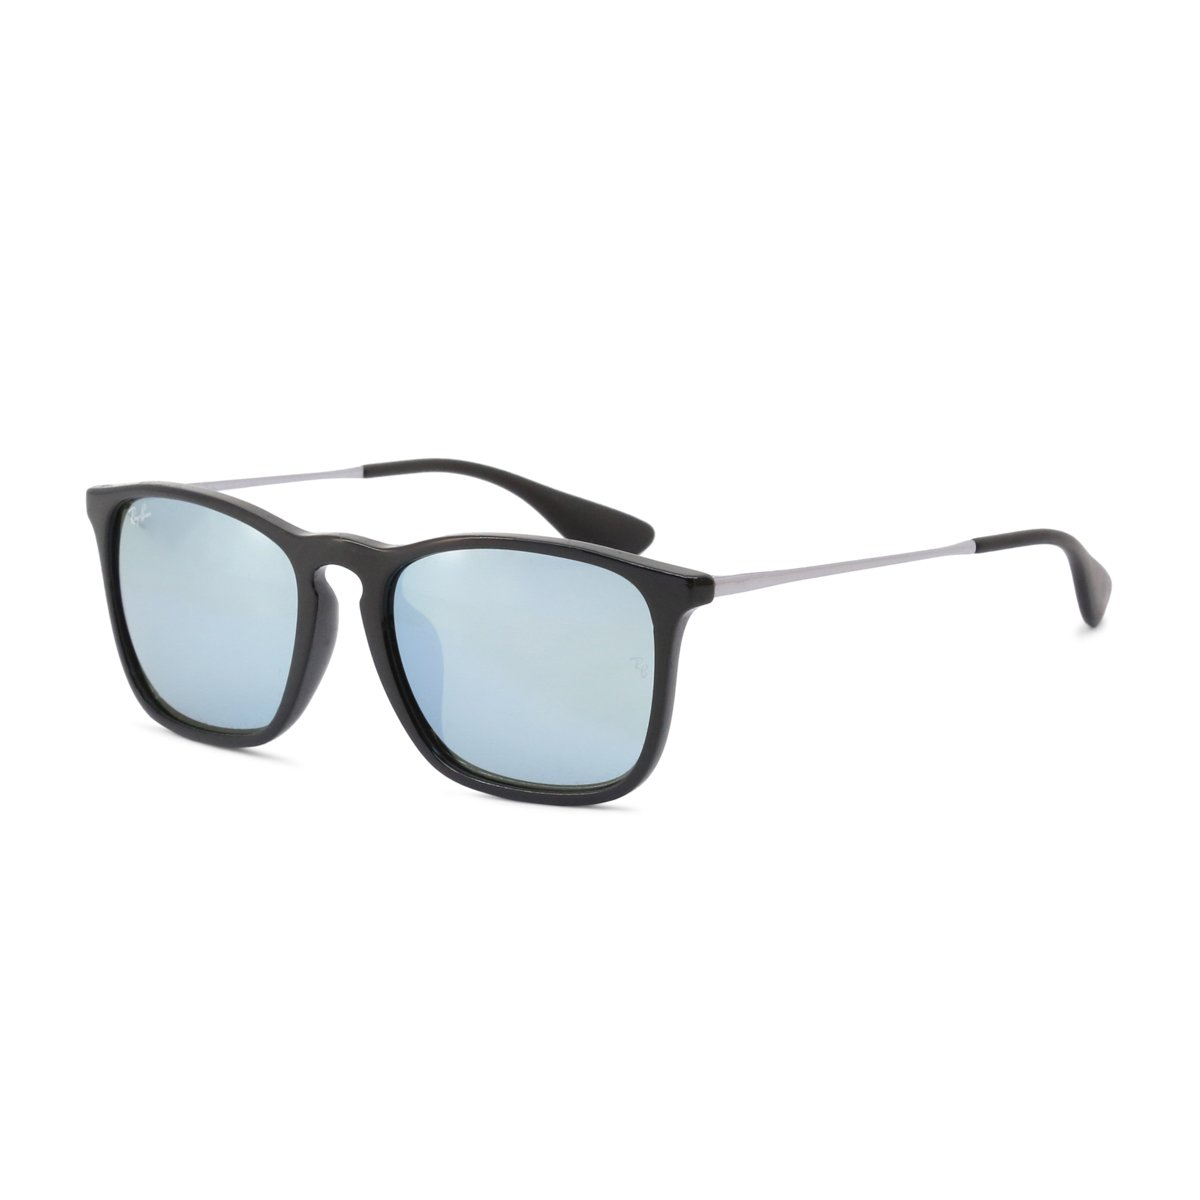 Ray-Ban Unisex Sunglasses Various Colours 0RB4187F - black-1 NOSIZE